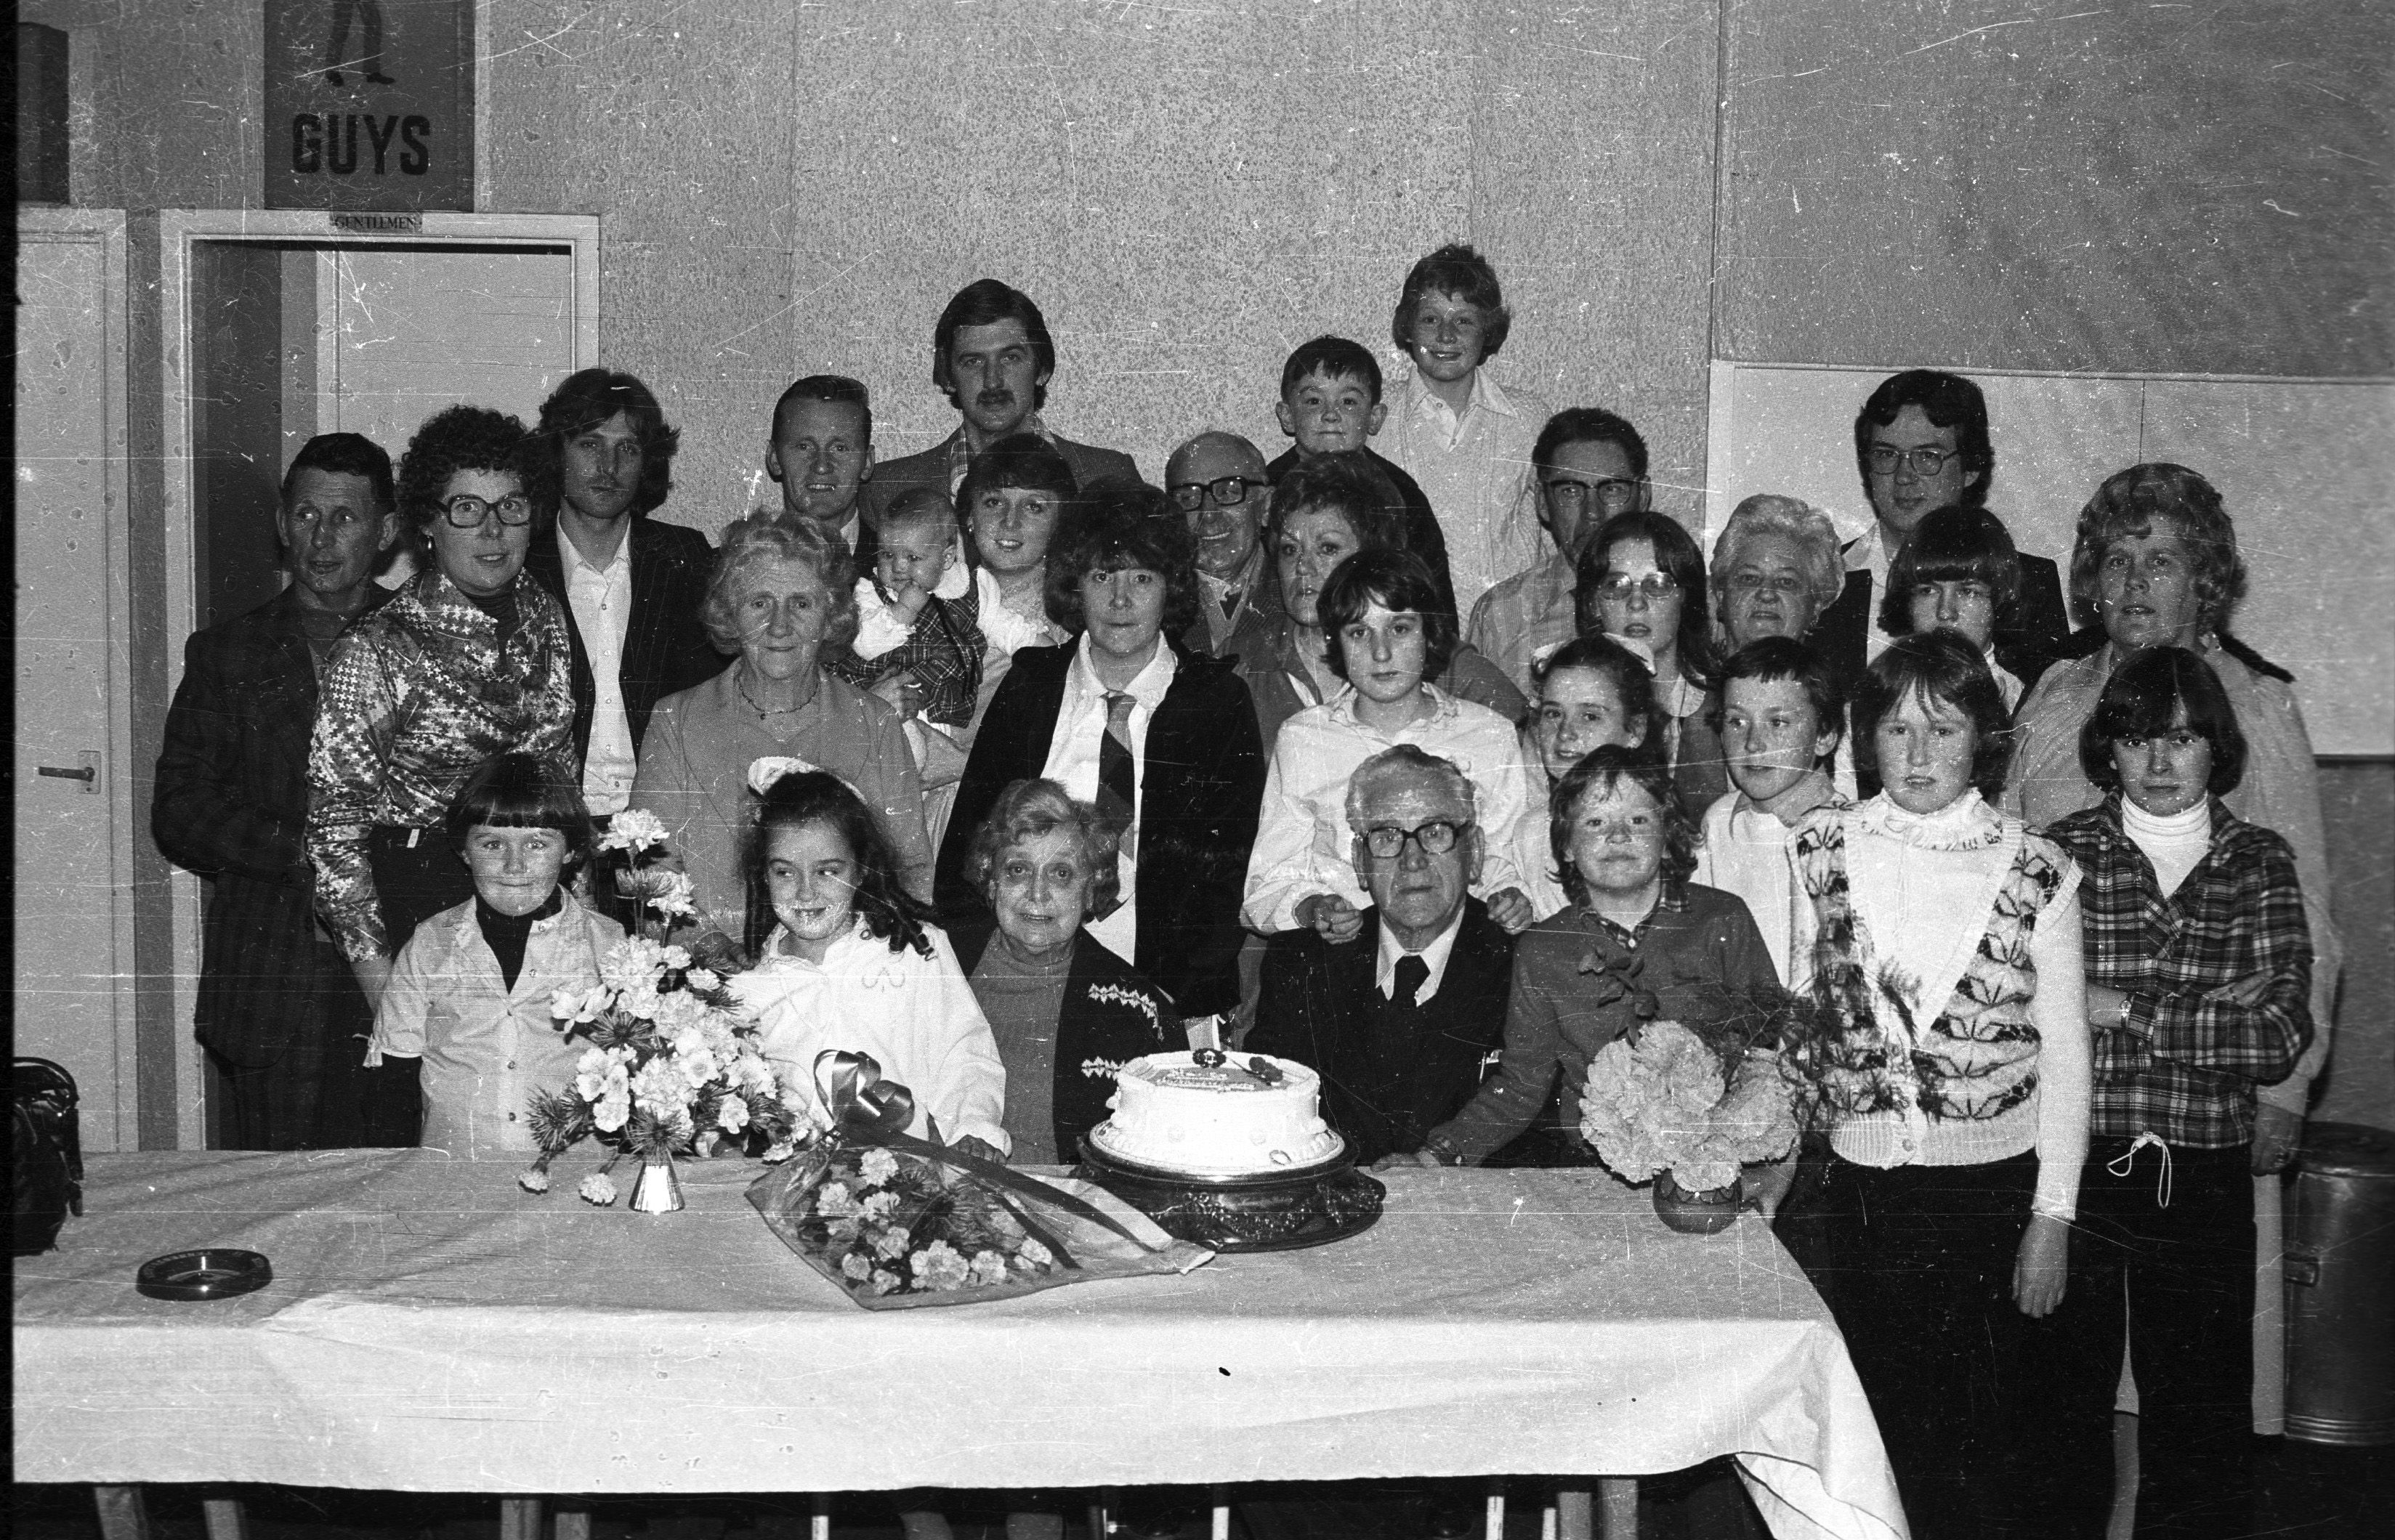 John and Mary Allison's golden wedding anniversary celebrations in St Gall\'s clubrooms, with their children Anne, Josie, Tony, Phyllis, Joe, Mona, relatives and guests this week in 1979